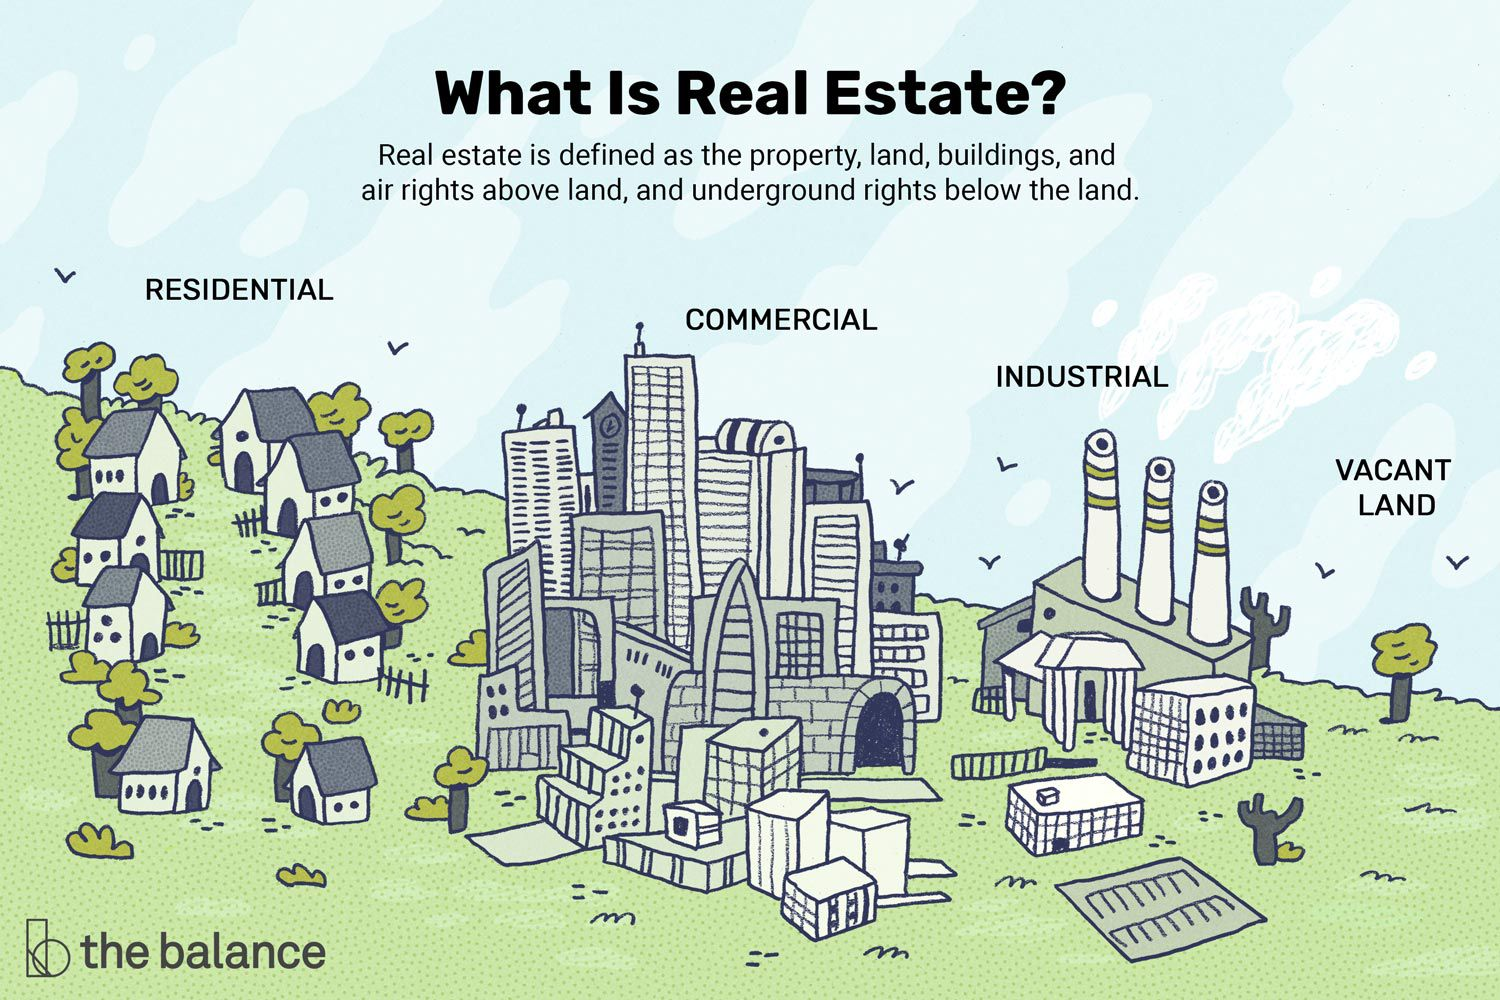 real-estate-what-it-is-and-how-it-works-